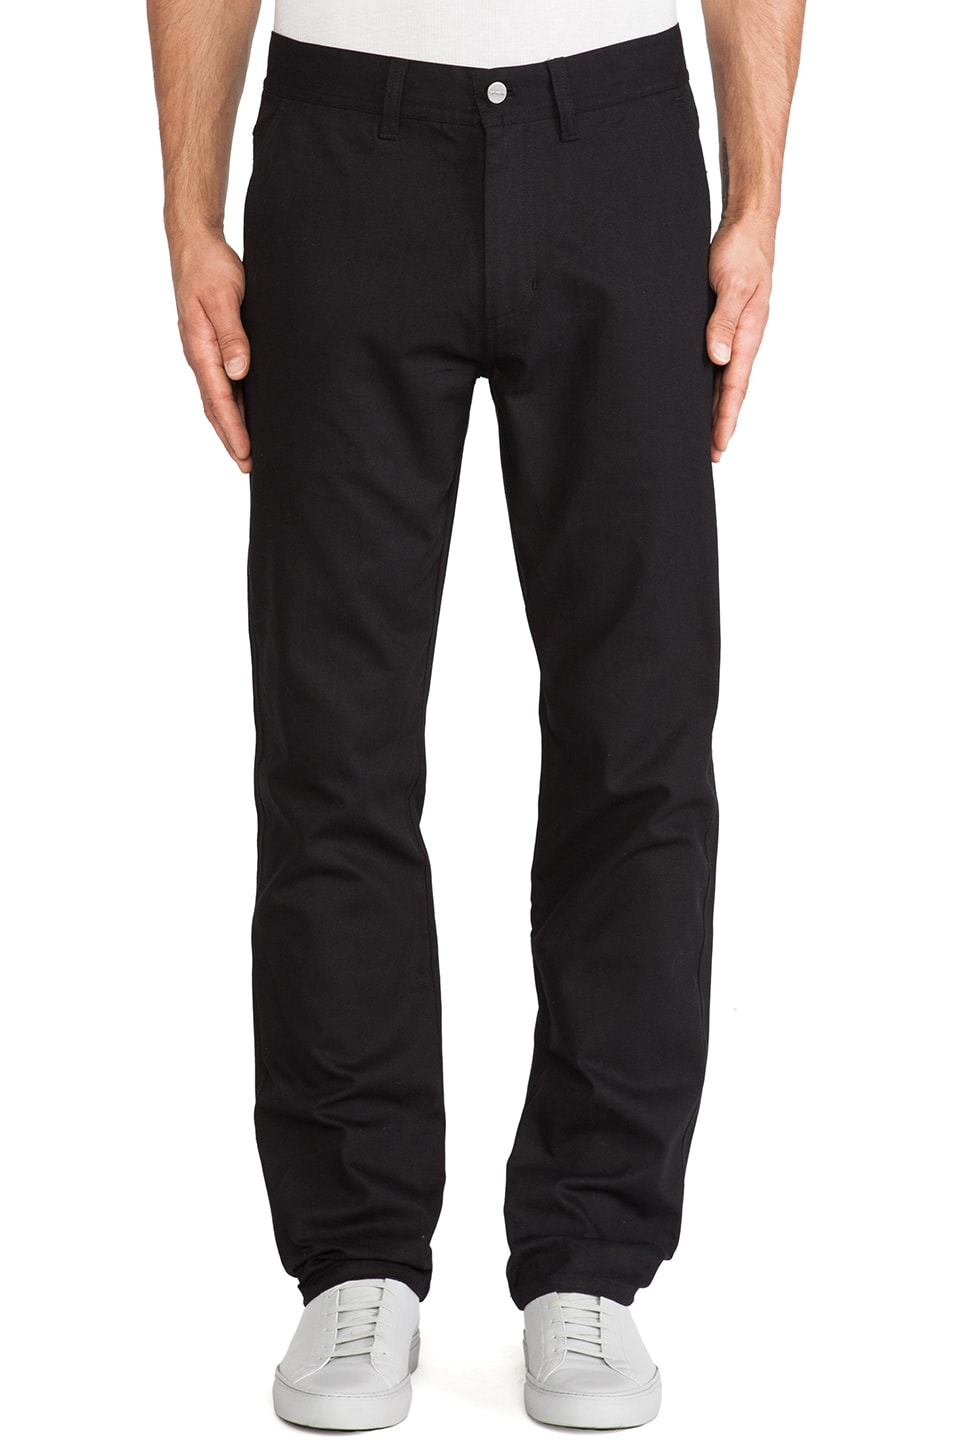 SATURDAYS NYC Jonas Slim Straight Pant in Black